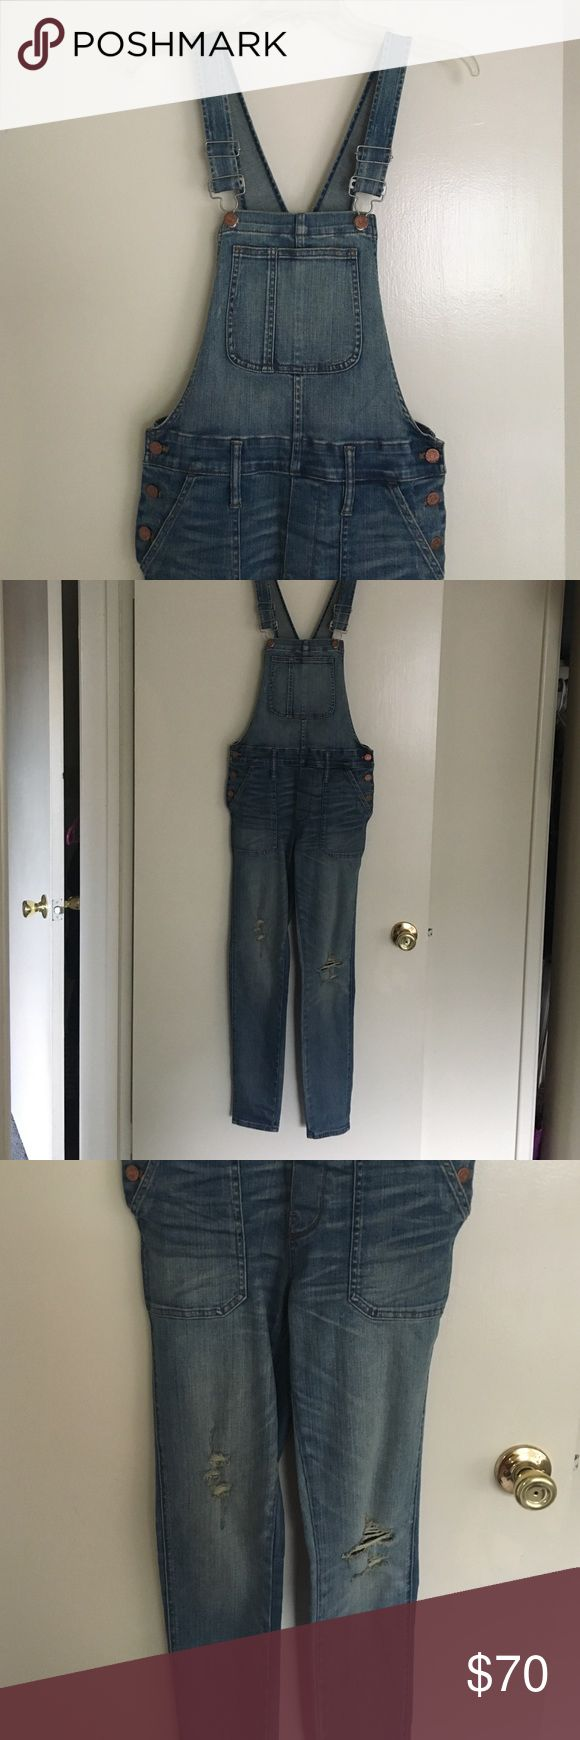 Madewell overalls Madewell distressed overalls. I am usually a small but these are xs. Stretchy denim. Only worn twice. Madewell Pants Jumpsuits & Rompers